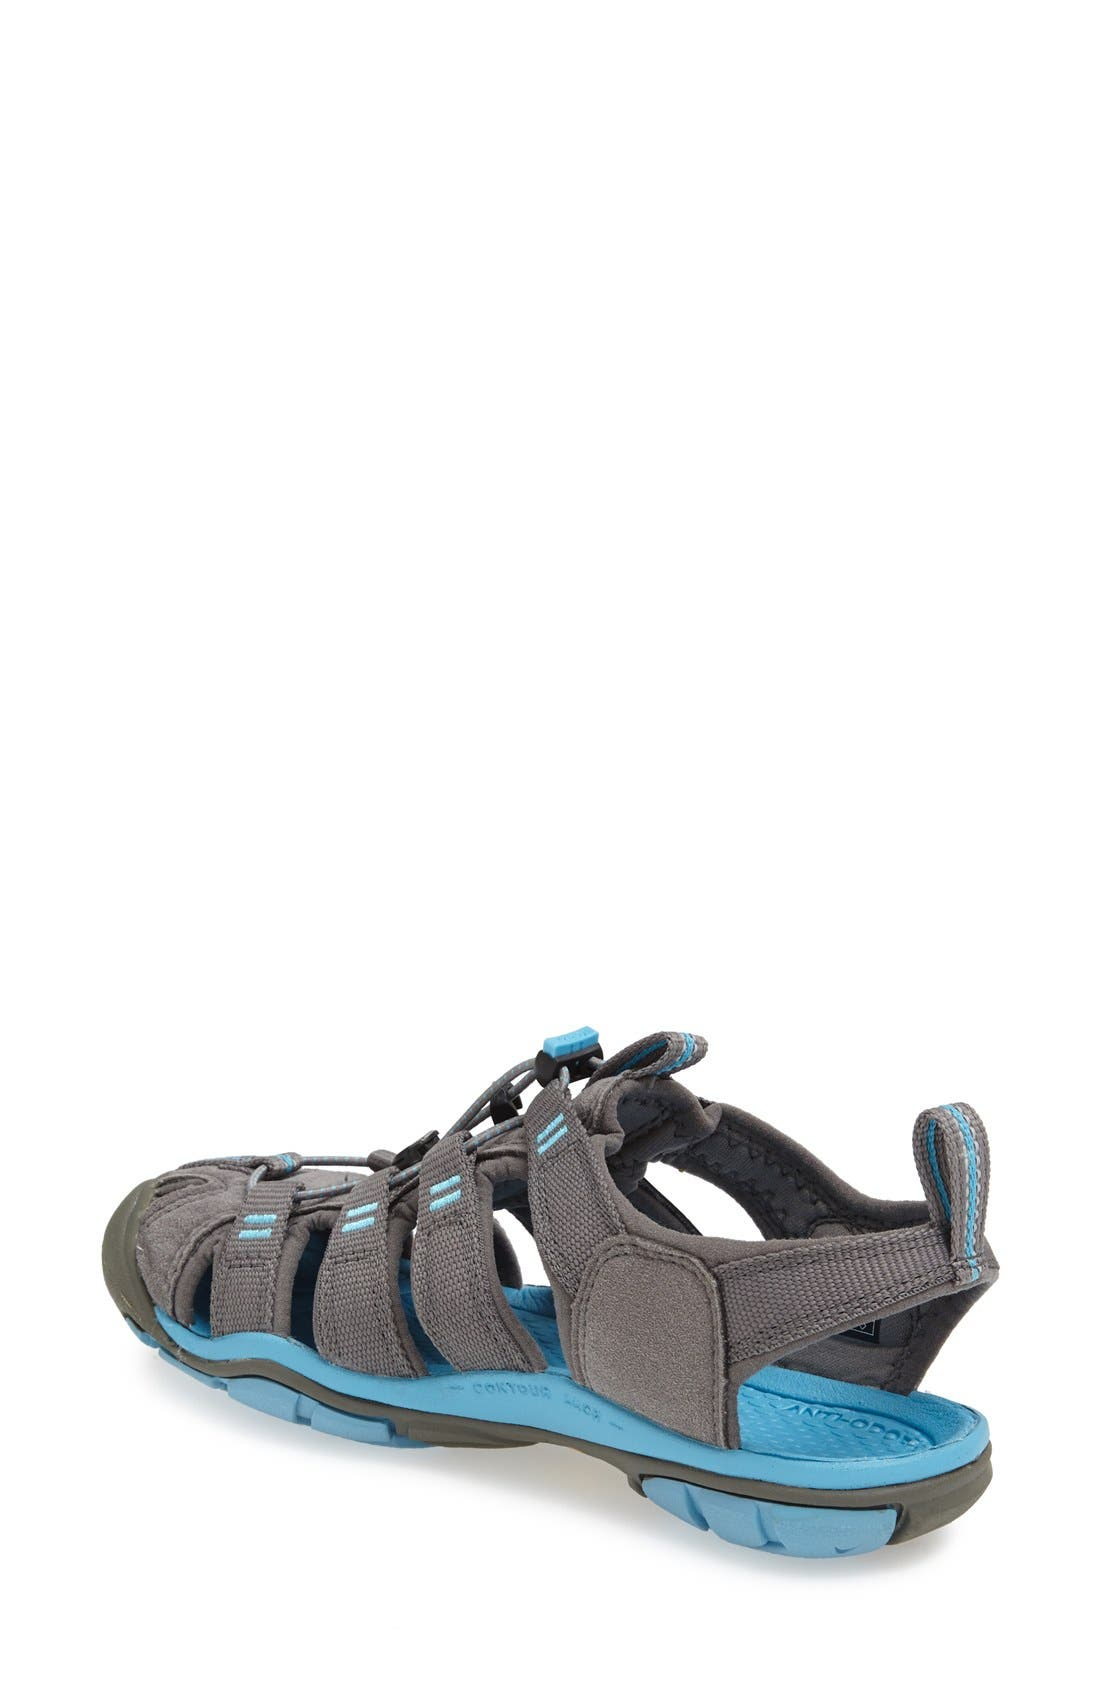 'Clearwater CNX' Sandal,                             Alternate thumbnail 2, color,                             Gargoyle/ Norse Blue